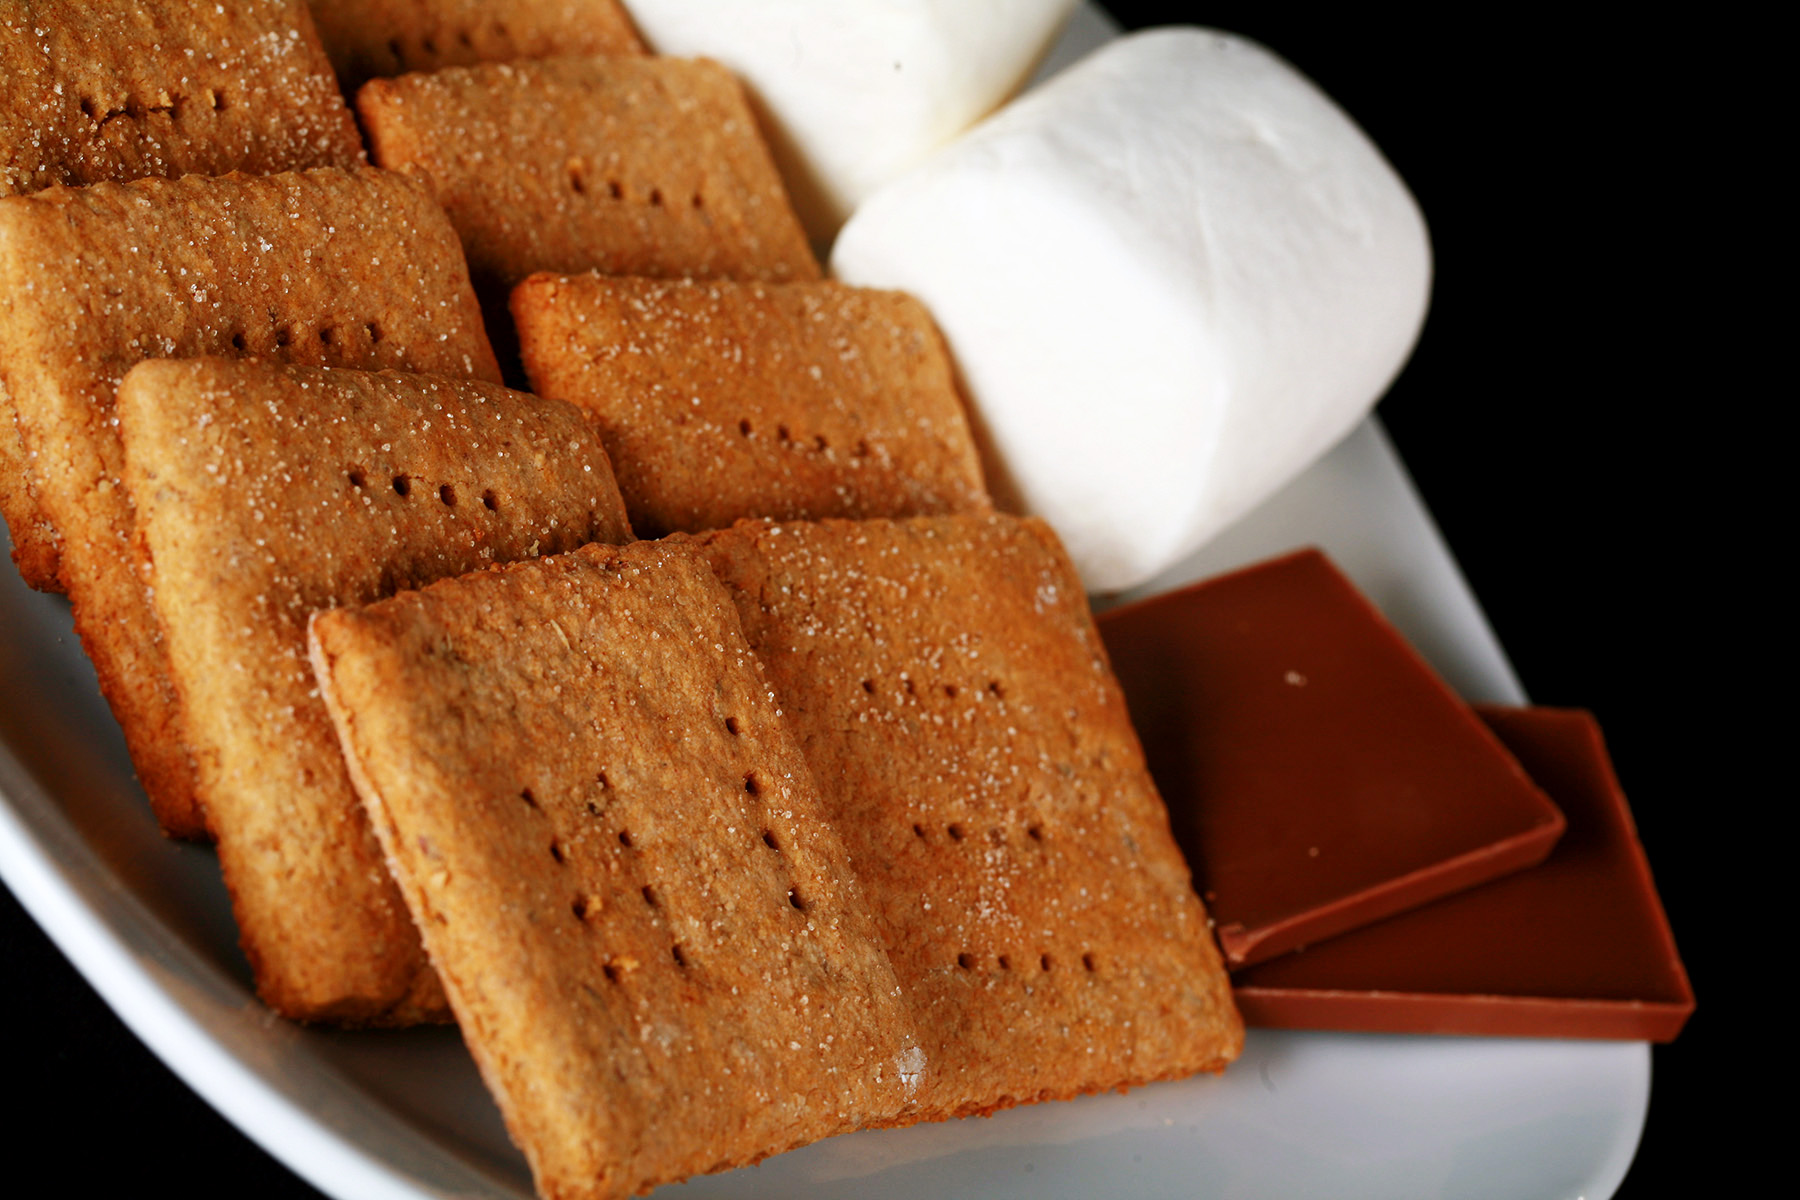 A white plate with rows of square shaped gluten-free graham crackers, a couple large marshmallows, and a piece of chocolate.